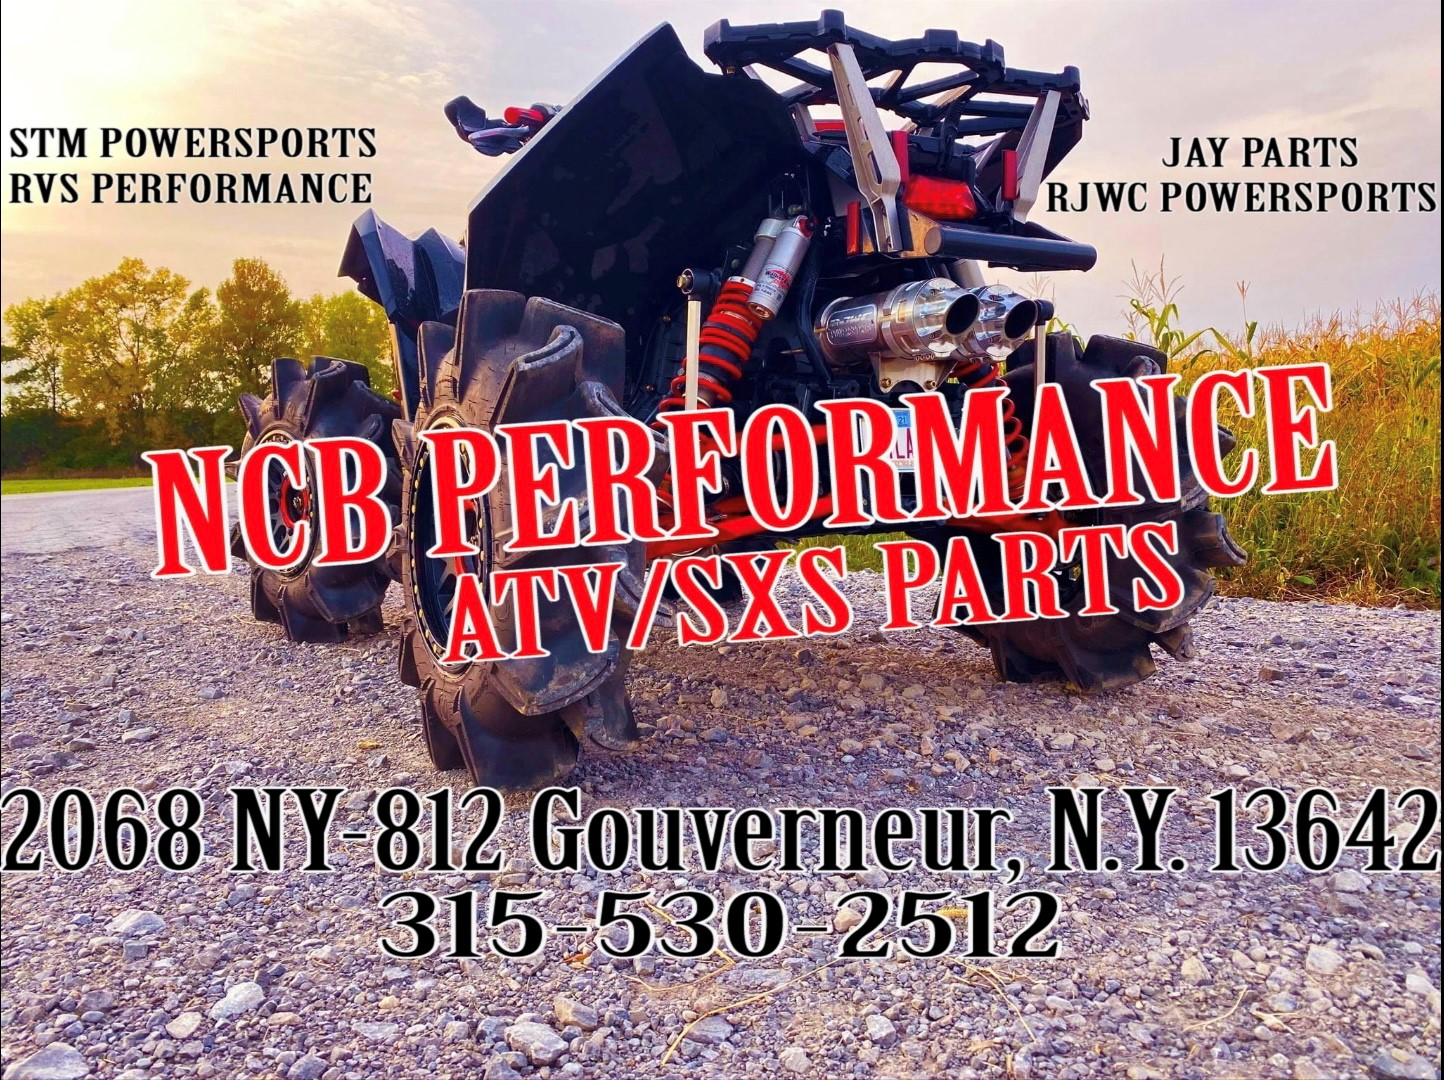 NCB Performance ATV/SxS Parts - USA - JAY PARTS Flagship Store Partner